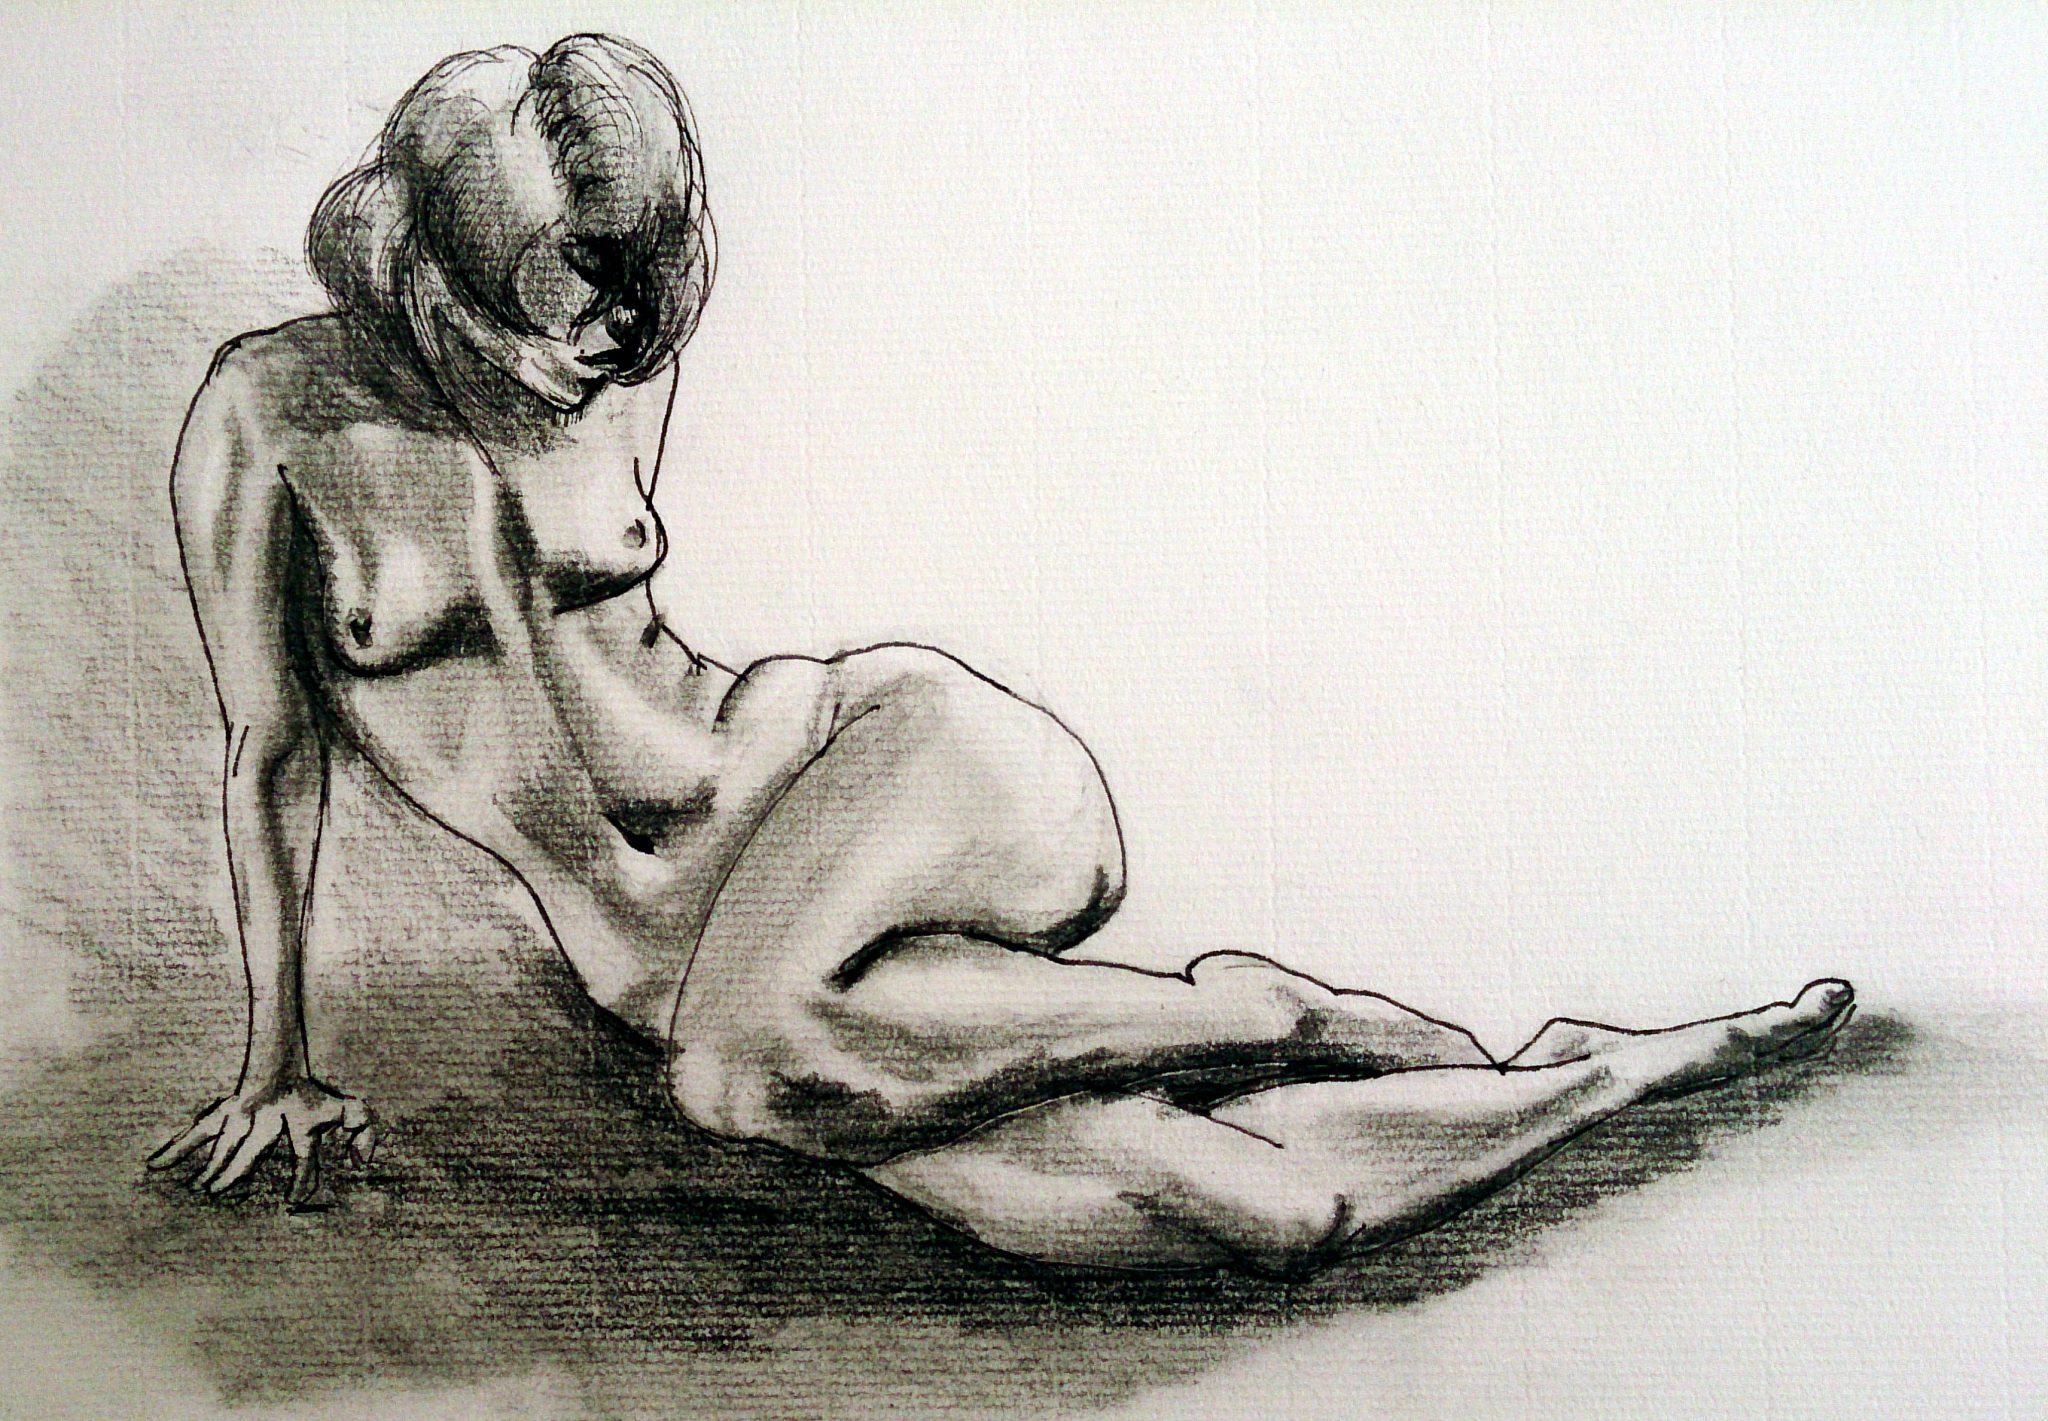 Nude Female Figure Hips Study in graphite and Ink, author: Jose Manuel Gallego Garcia, all rights reserverd, visit retratarte.org